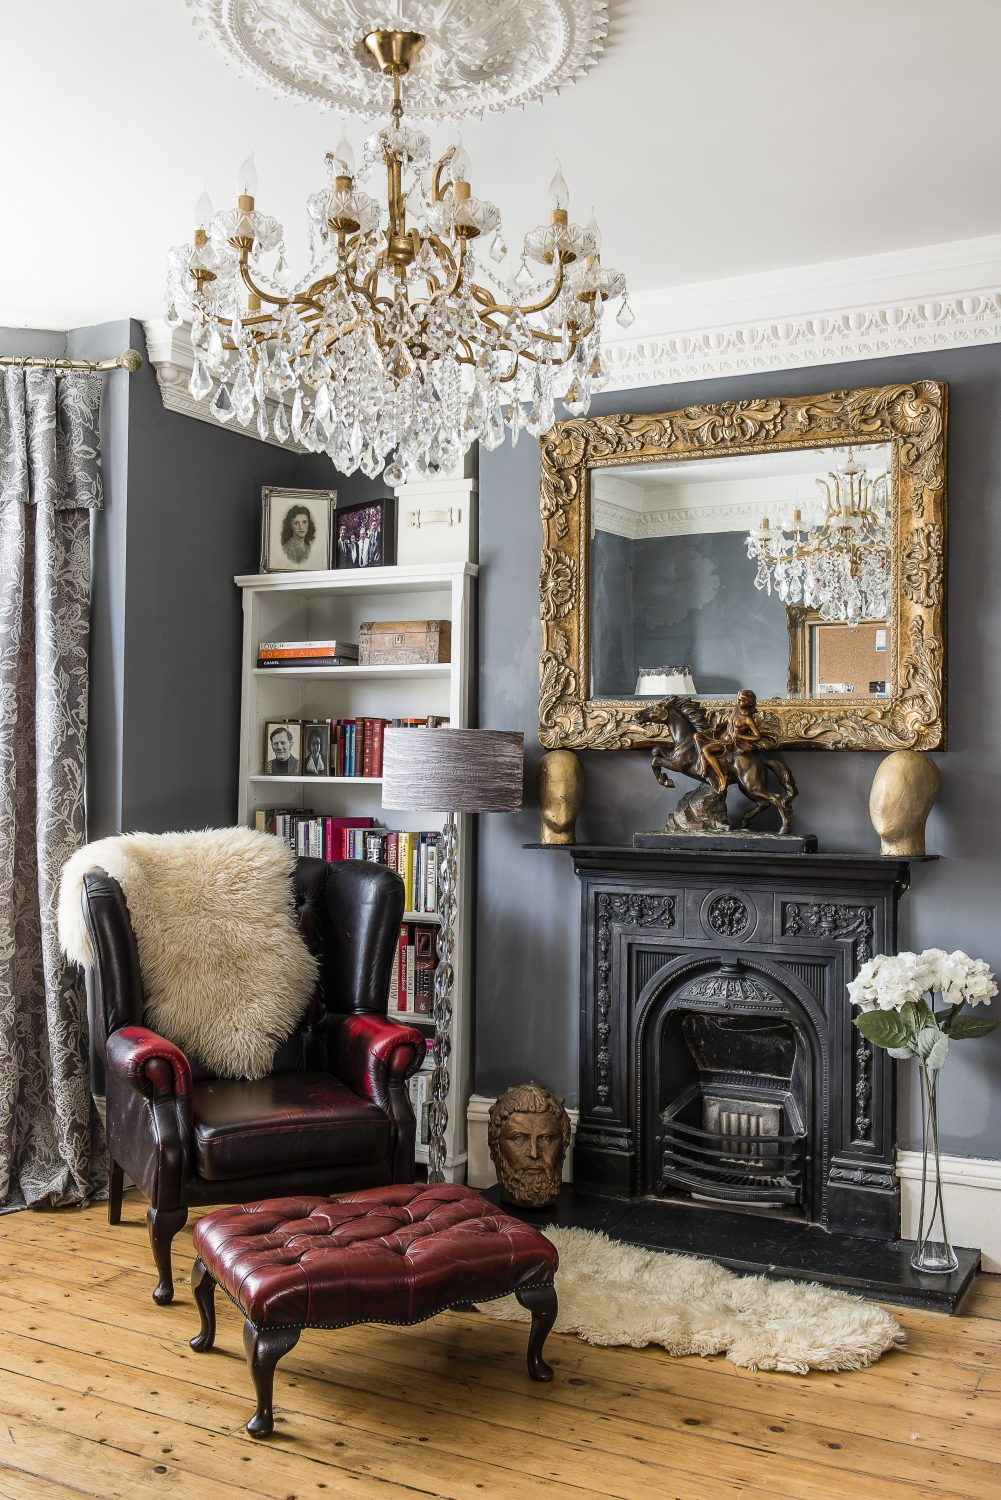 Sarah has created dramatic glamour in the ground floor study, with a statement chandelier from Roomings in George Street, Hastings Old Town Above left: the furry leopard print chest of drawers is from Hastings Antique Warehouse.